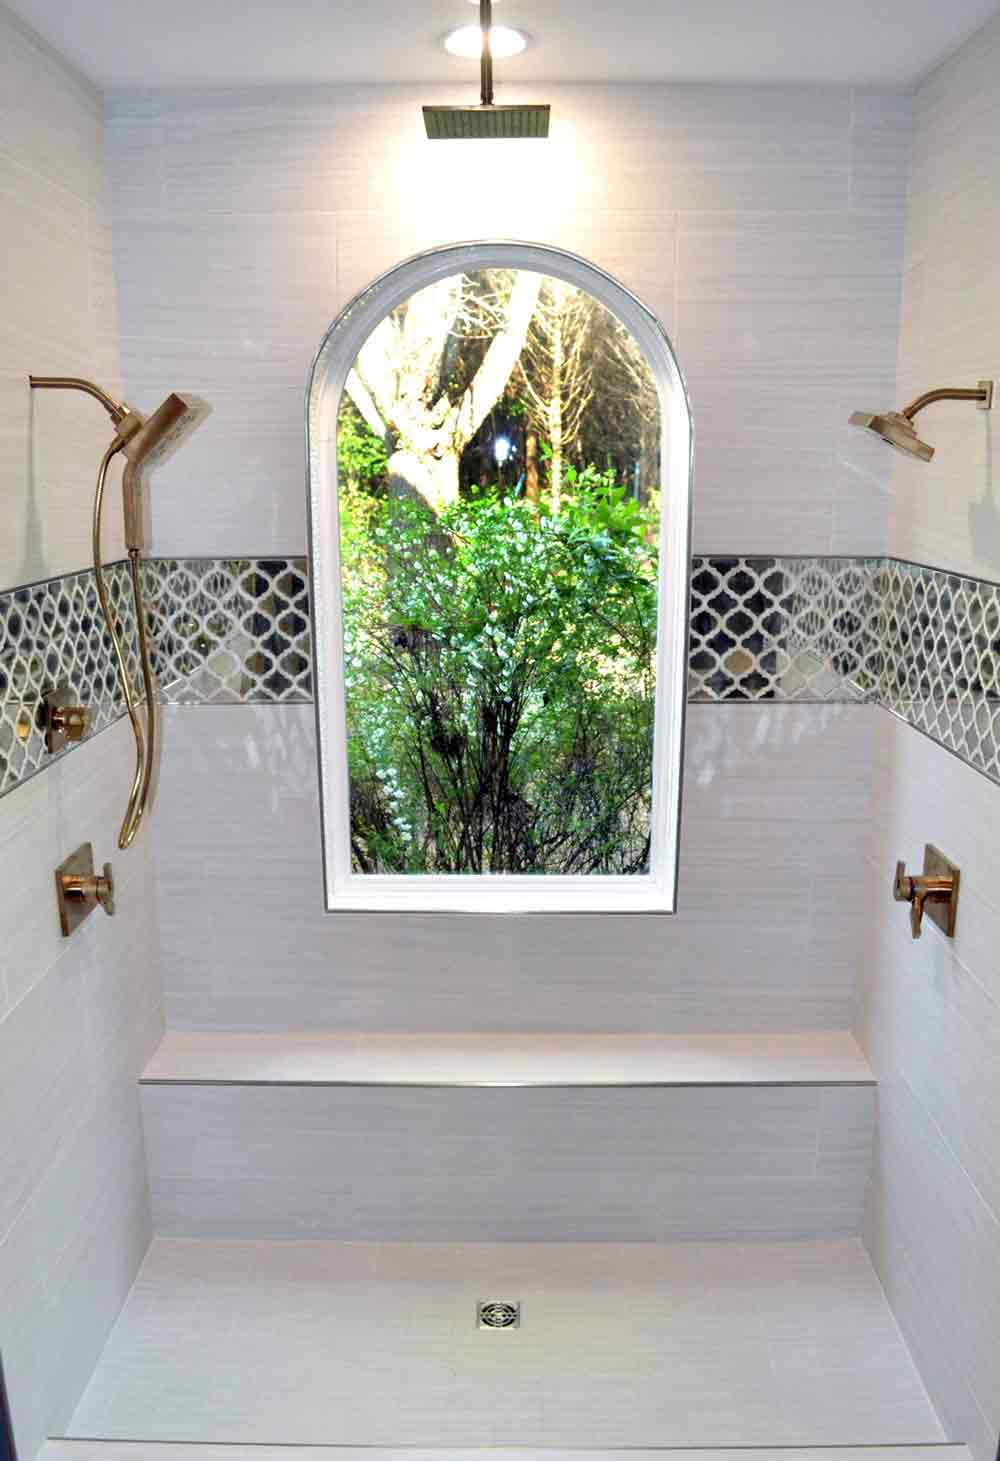 Tile Showers and Tile Kitchens - Tupelo, MS - Adair Carpet and Flooring